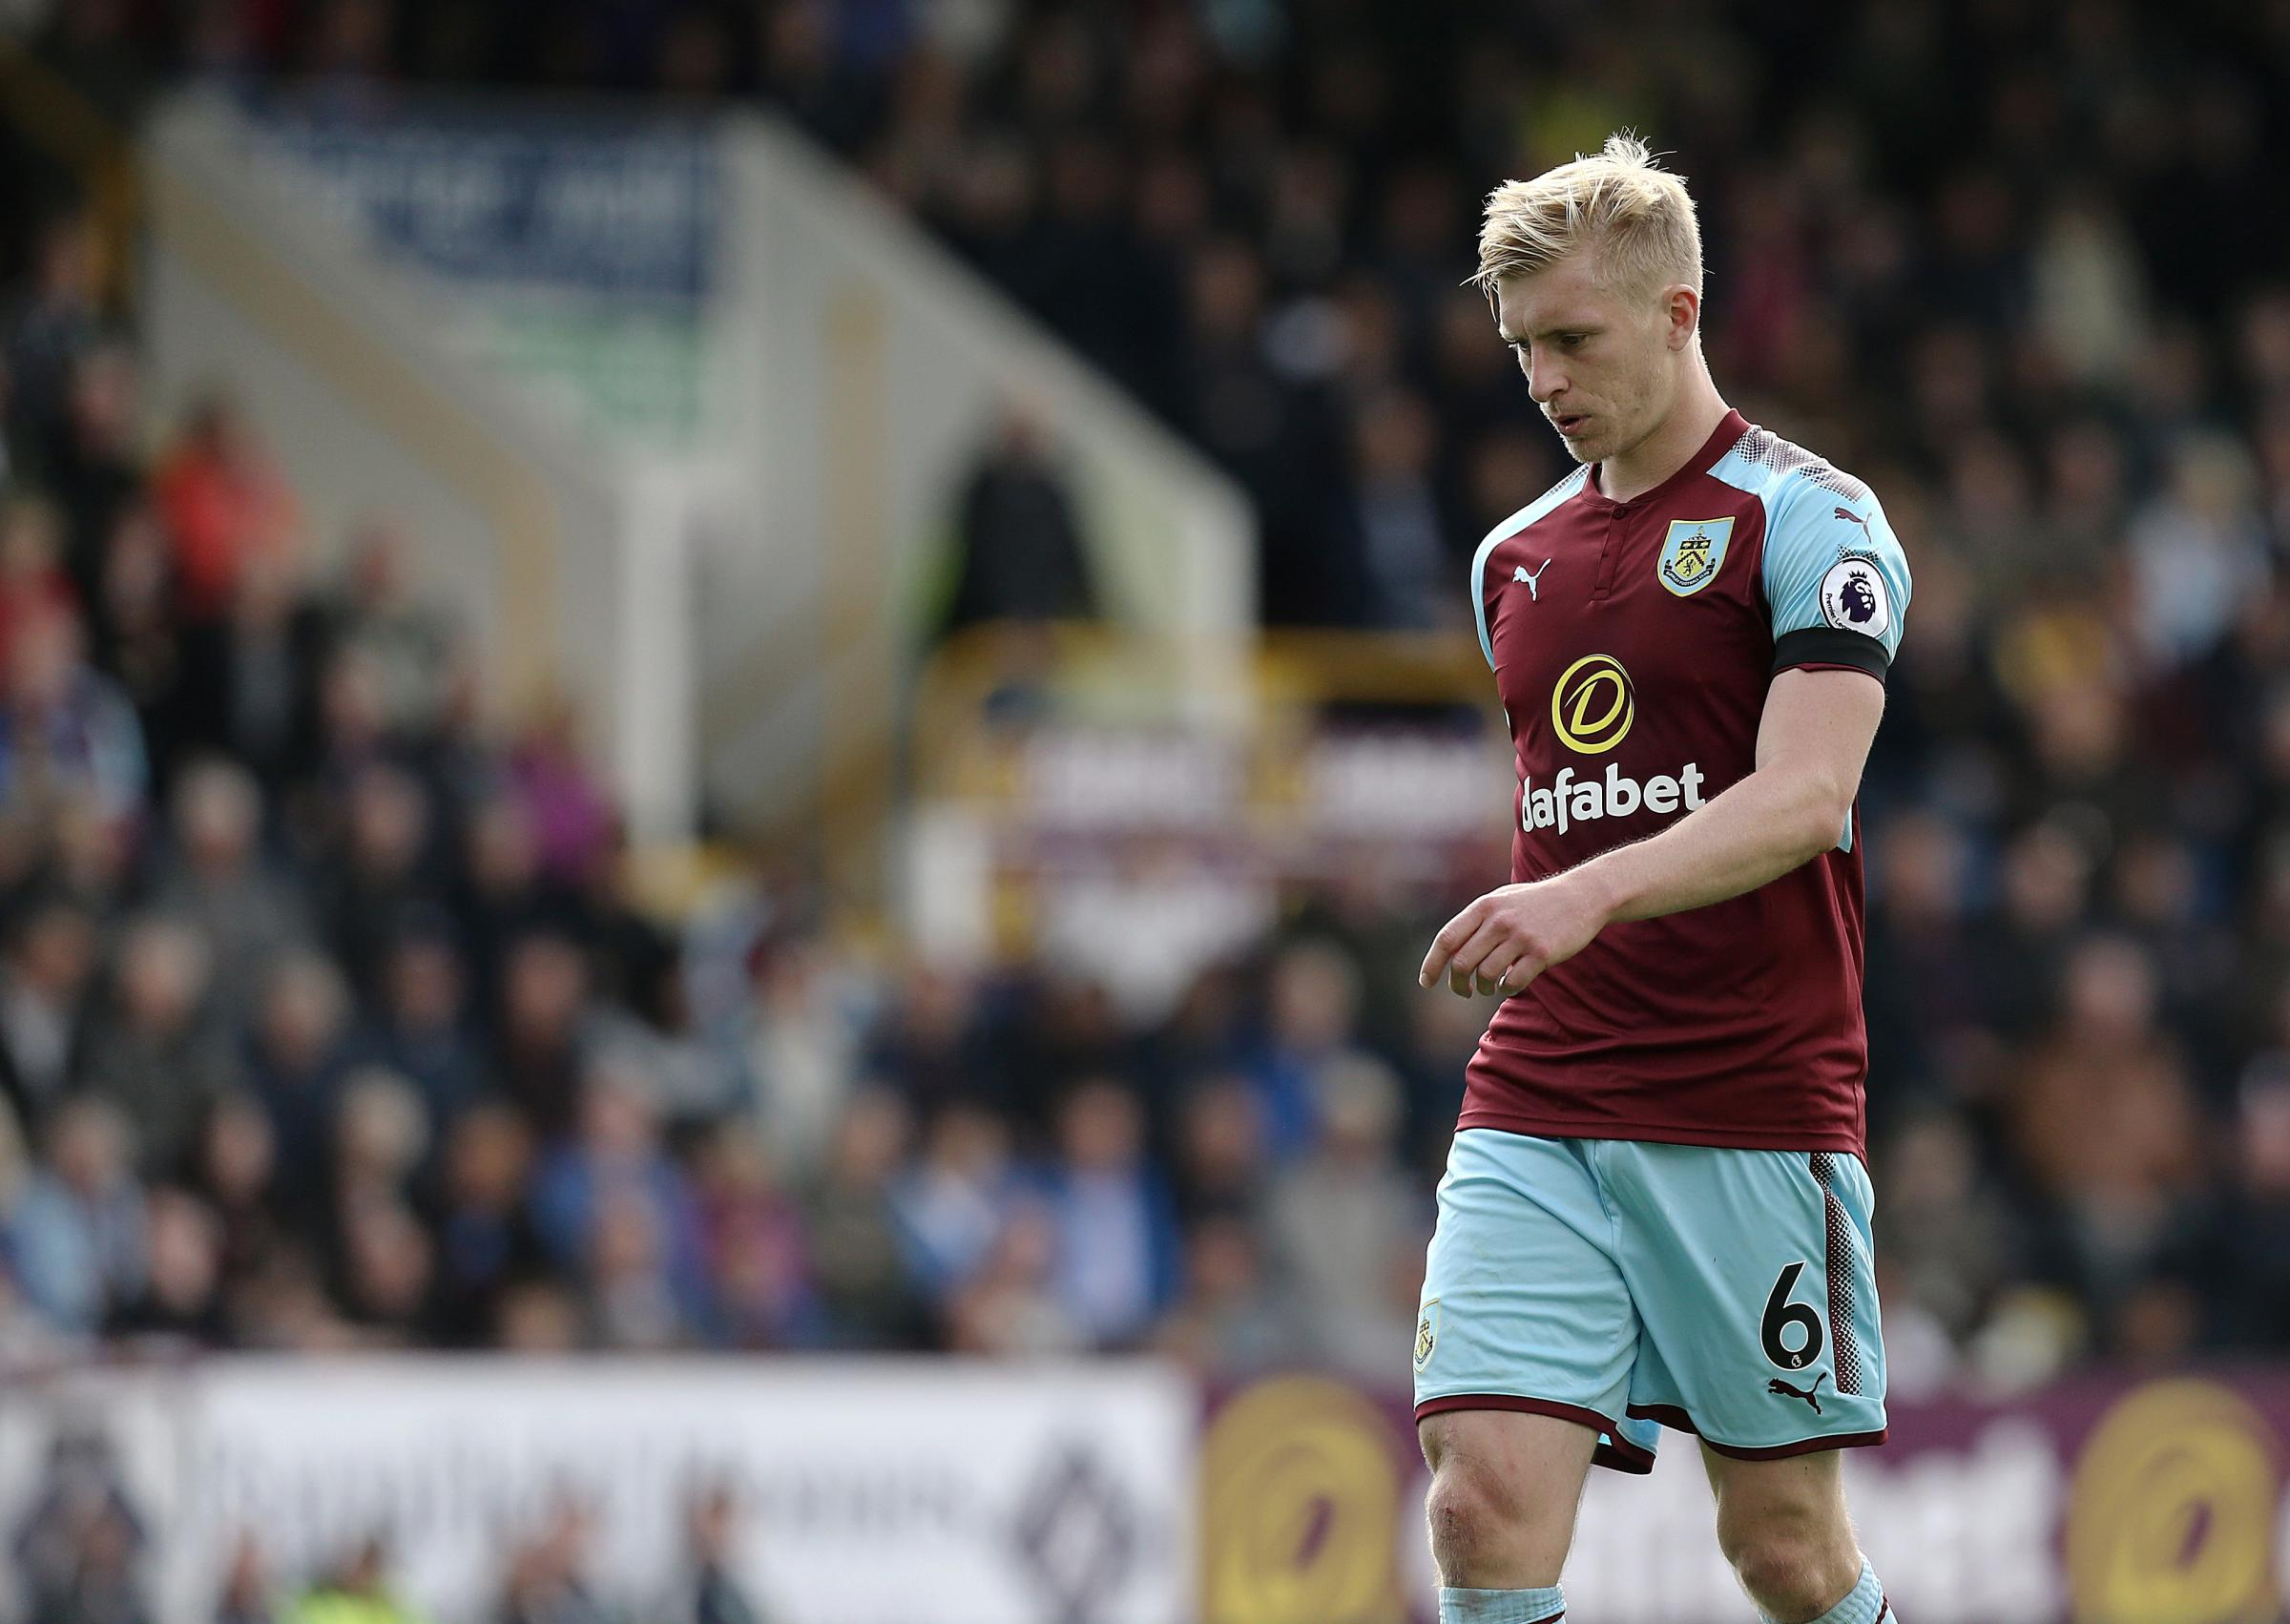 Burnley remain hopeful over securing Ben Mee on a new deal